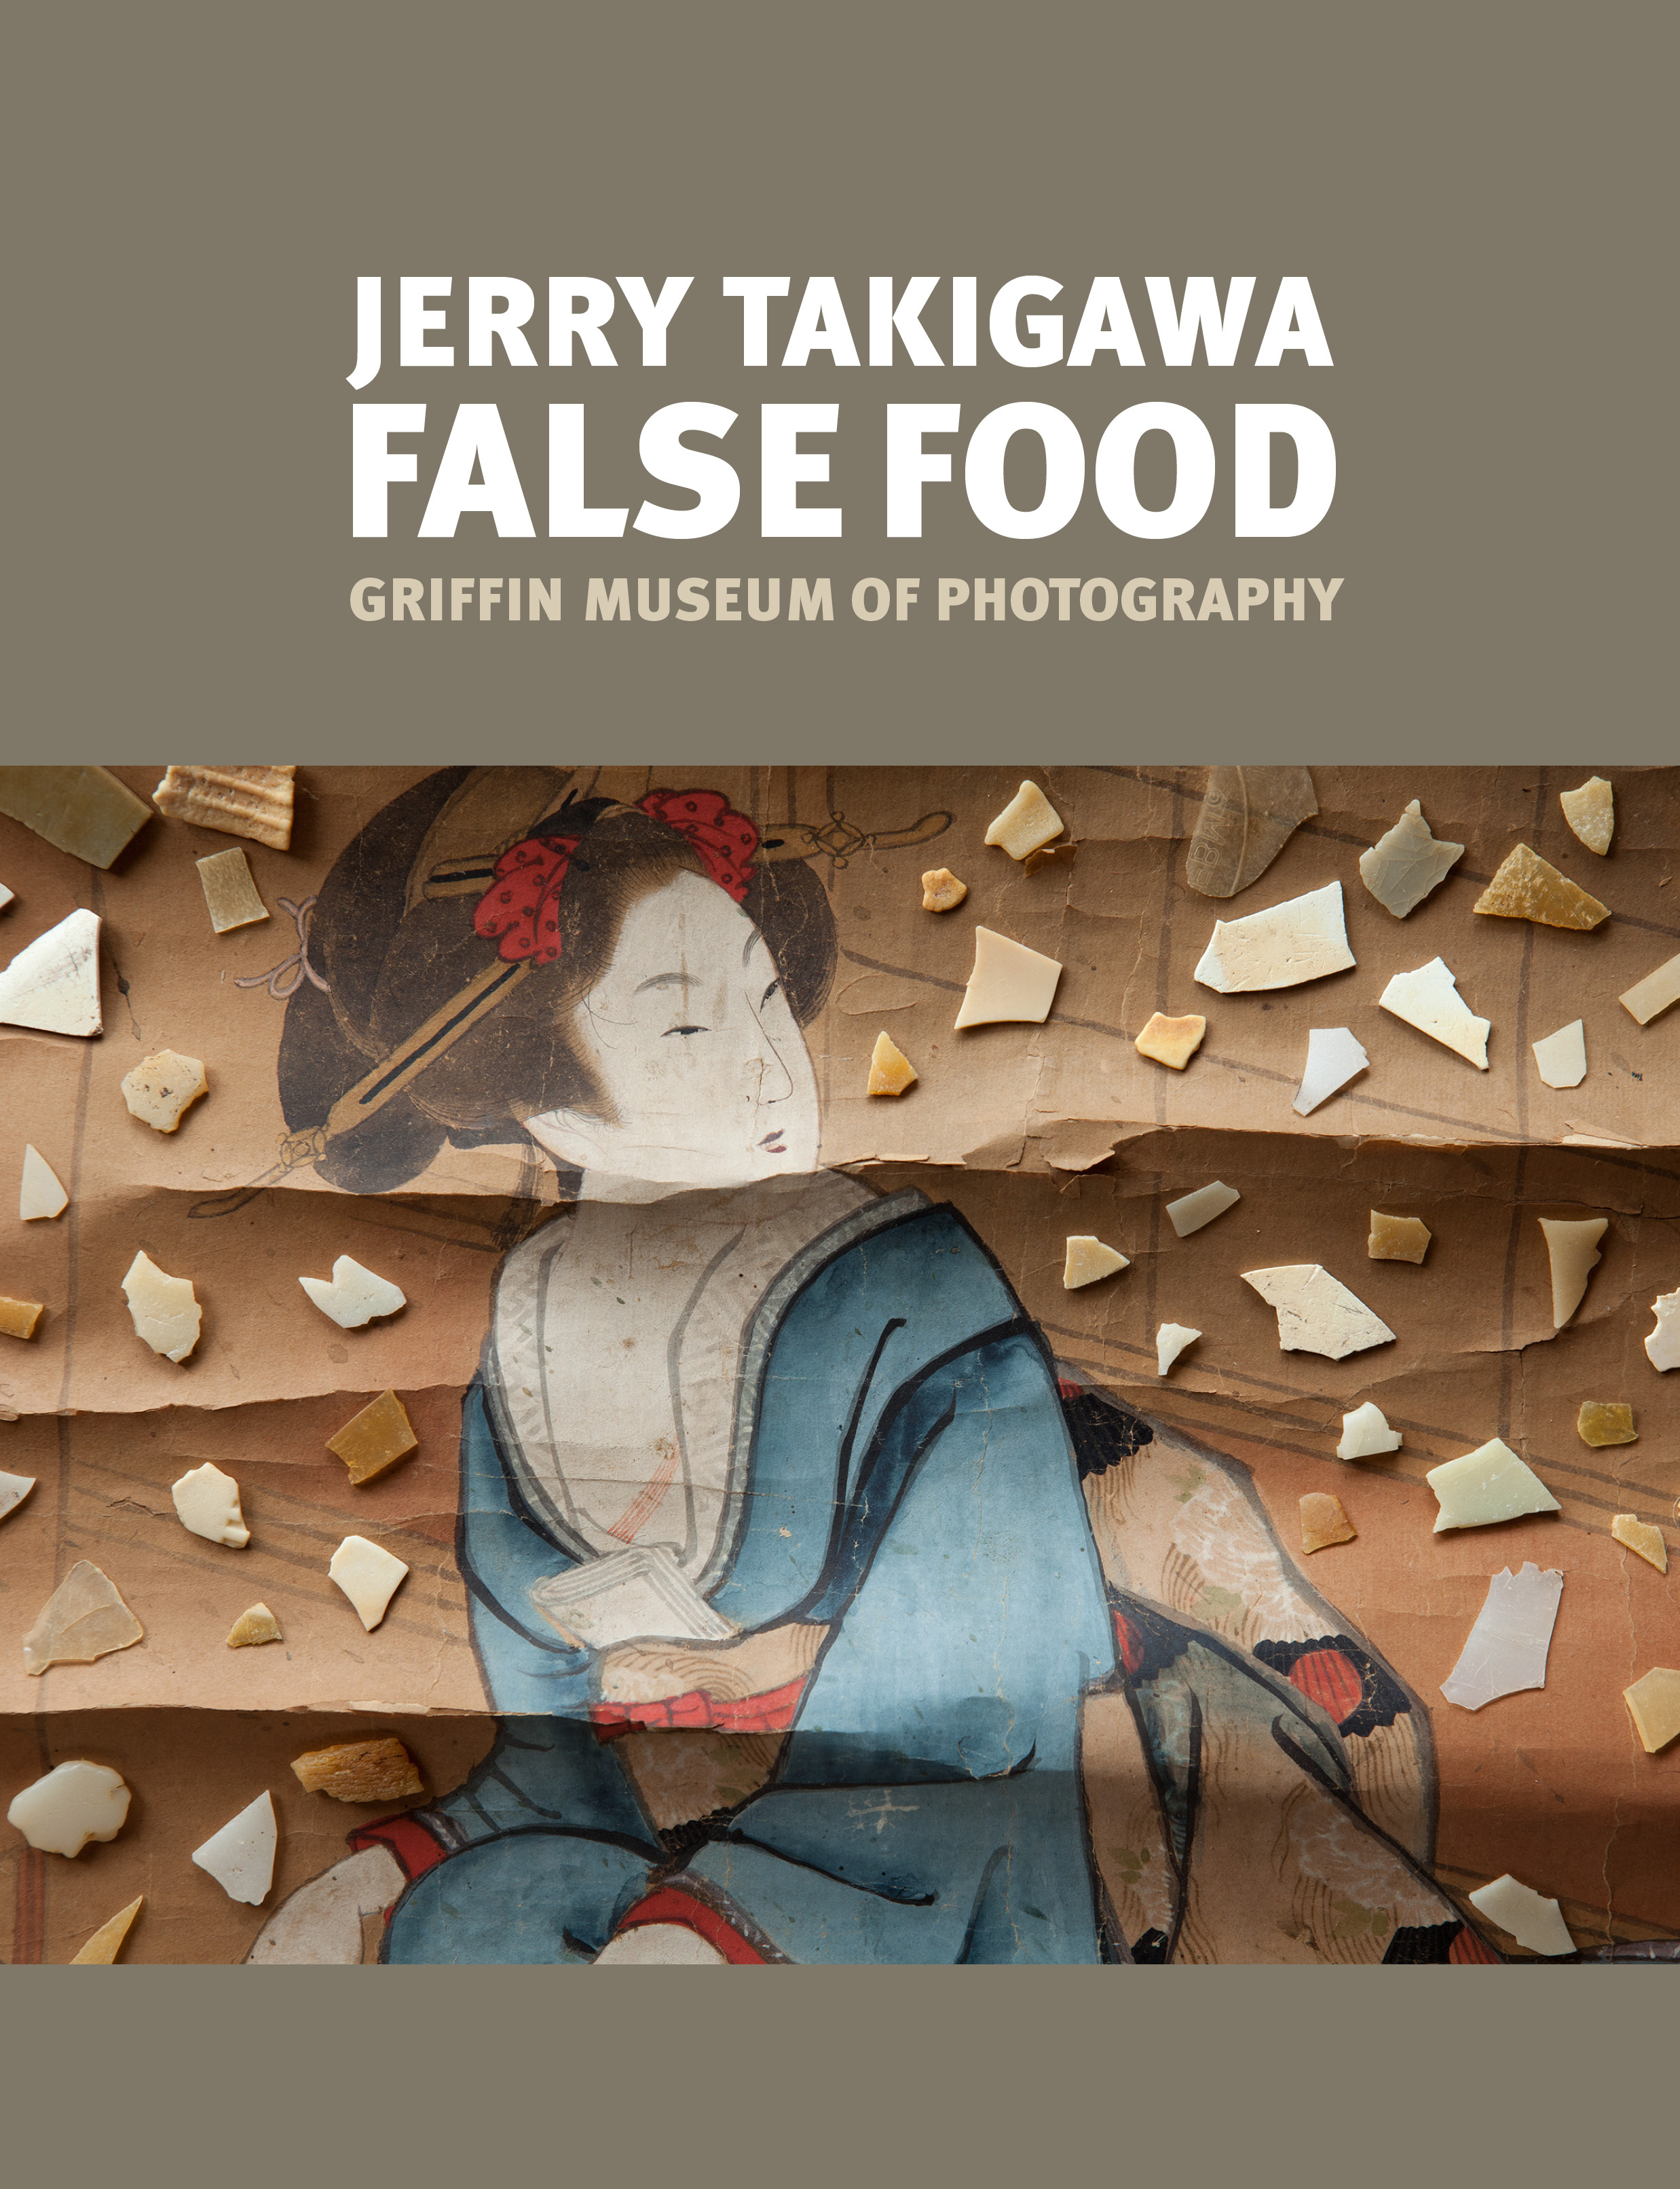 False Food: Jerry Takigawa